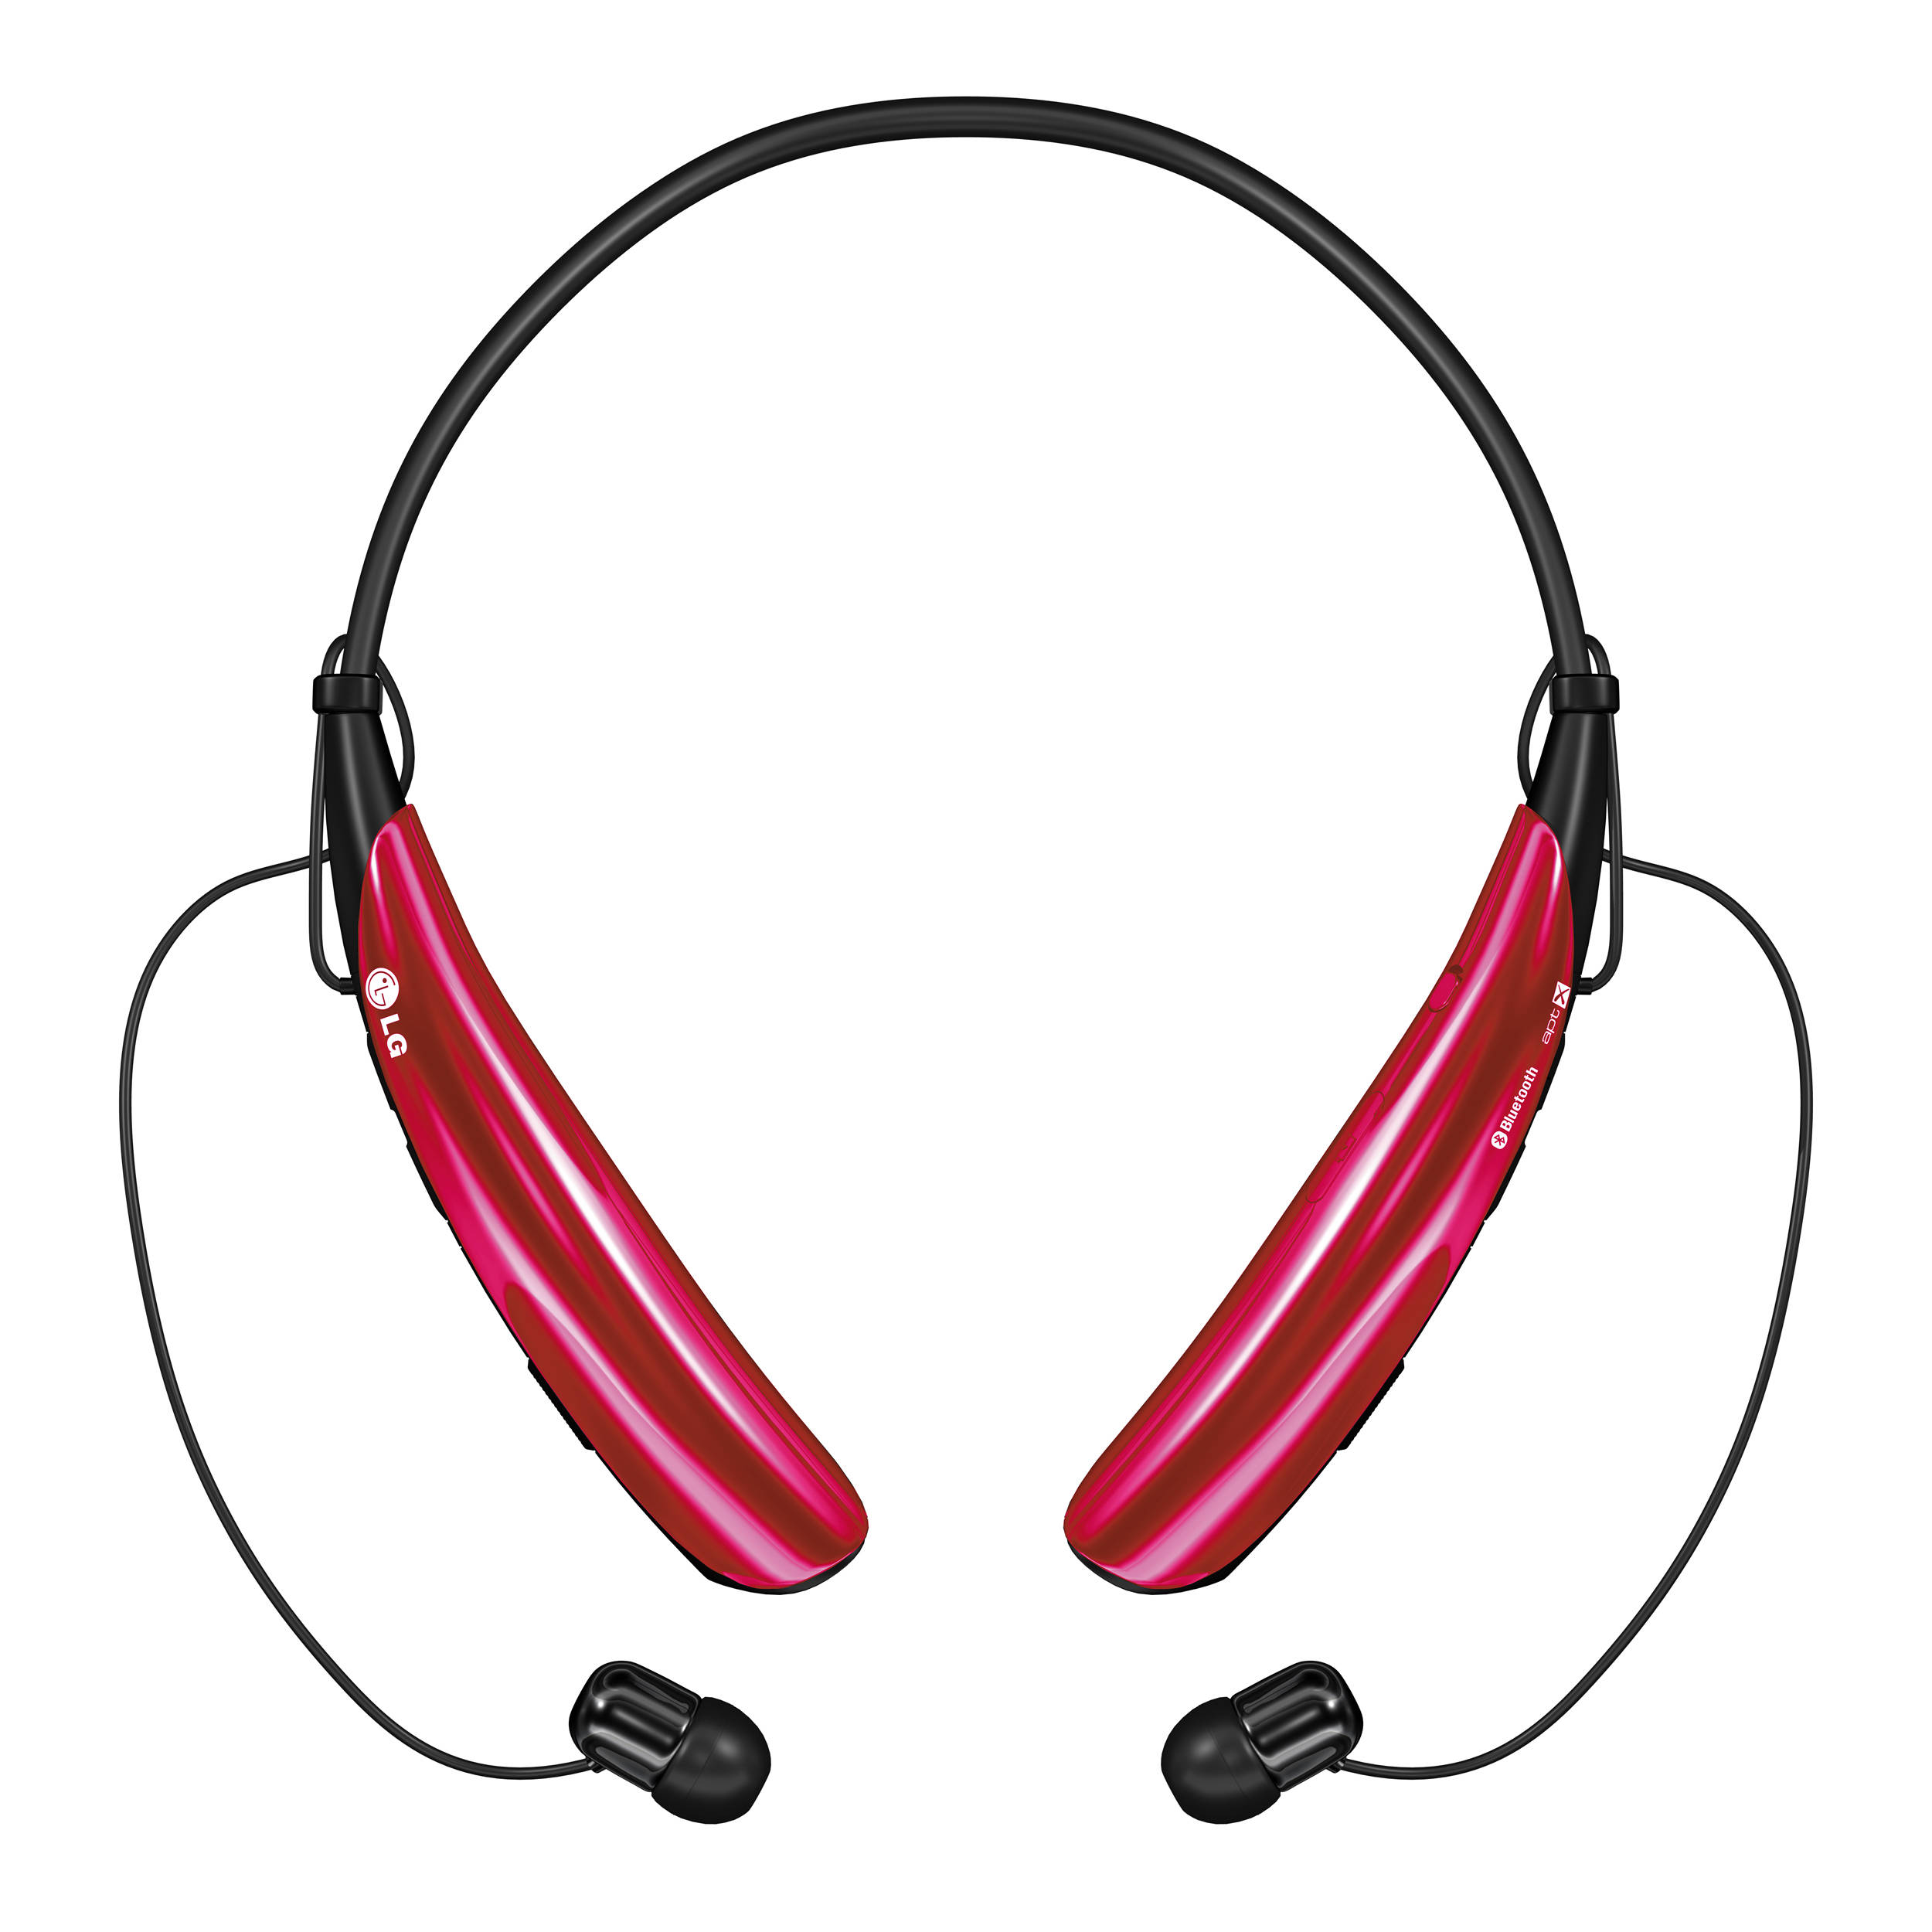 Headphones bluetooth sport pink - pink bluetooth headphones lg